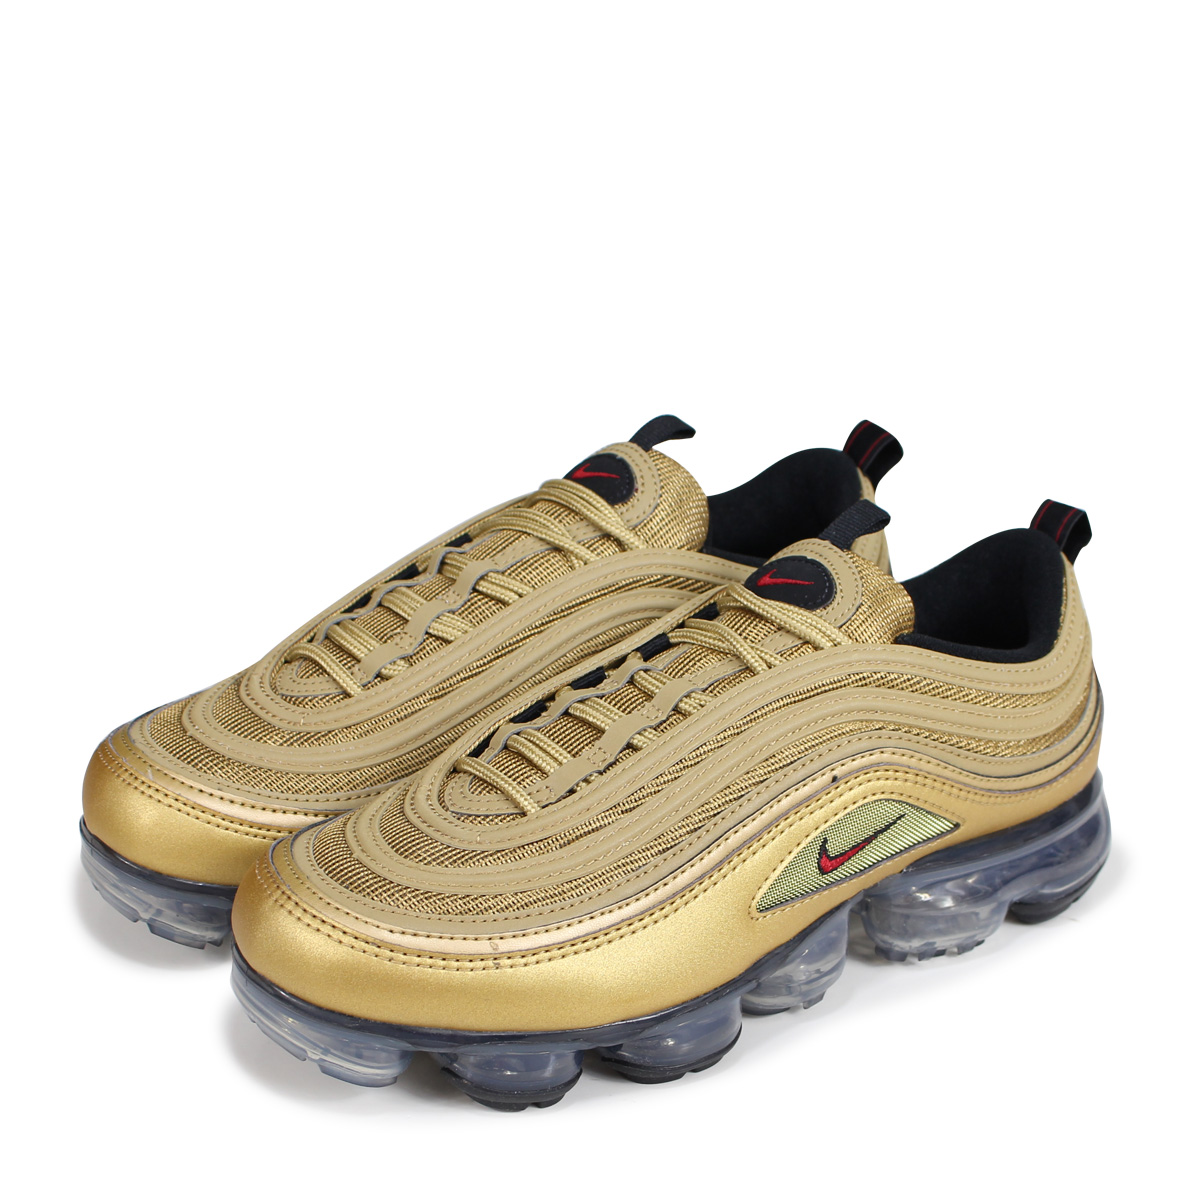 408e4d86e1 NIKE AIR VAPORMAX 97 Nike air vapor max 97 sneakers men AJ7291-700 gold ...